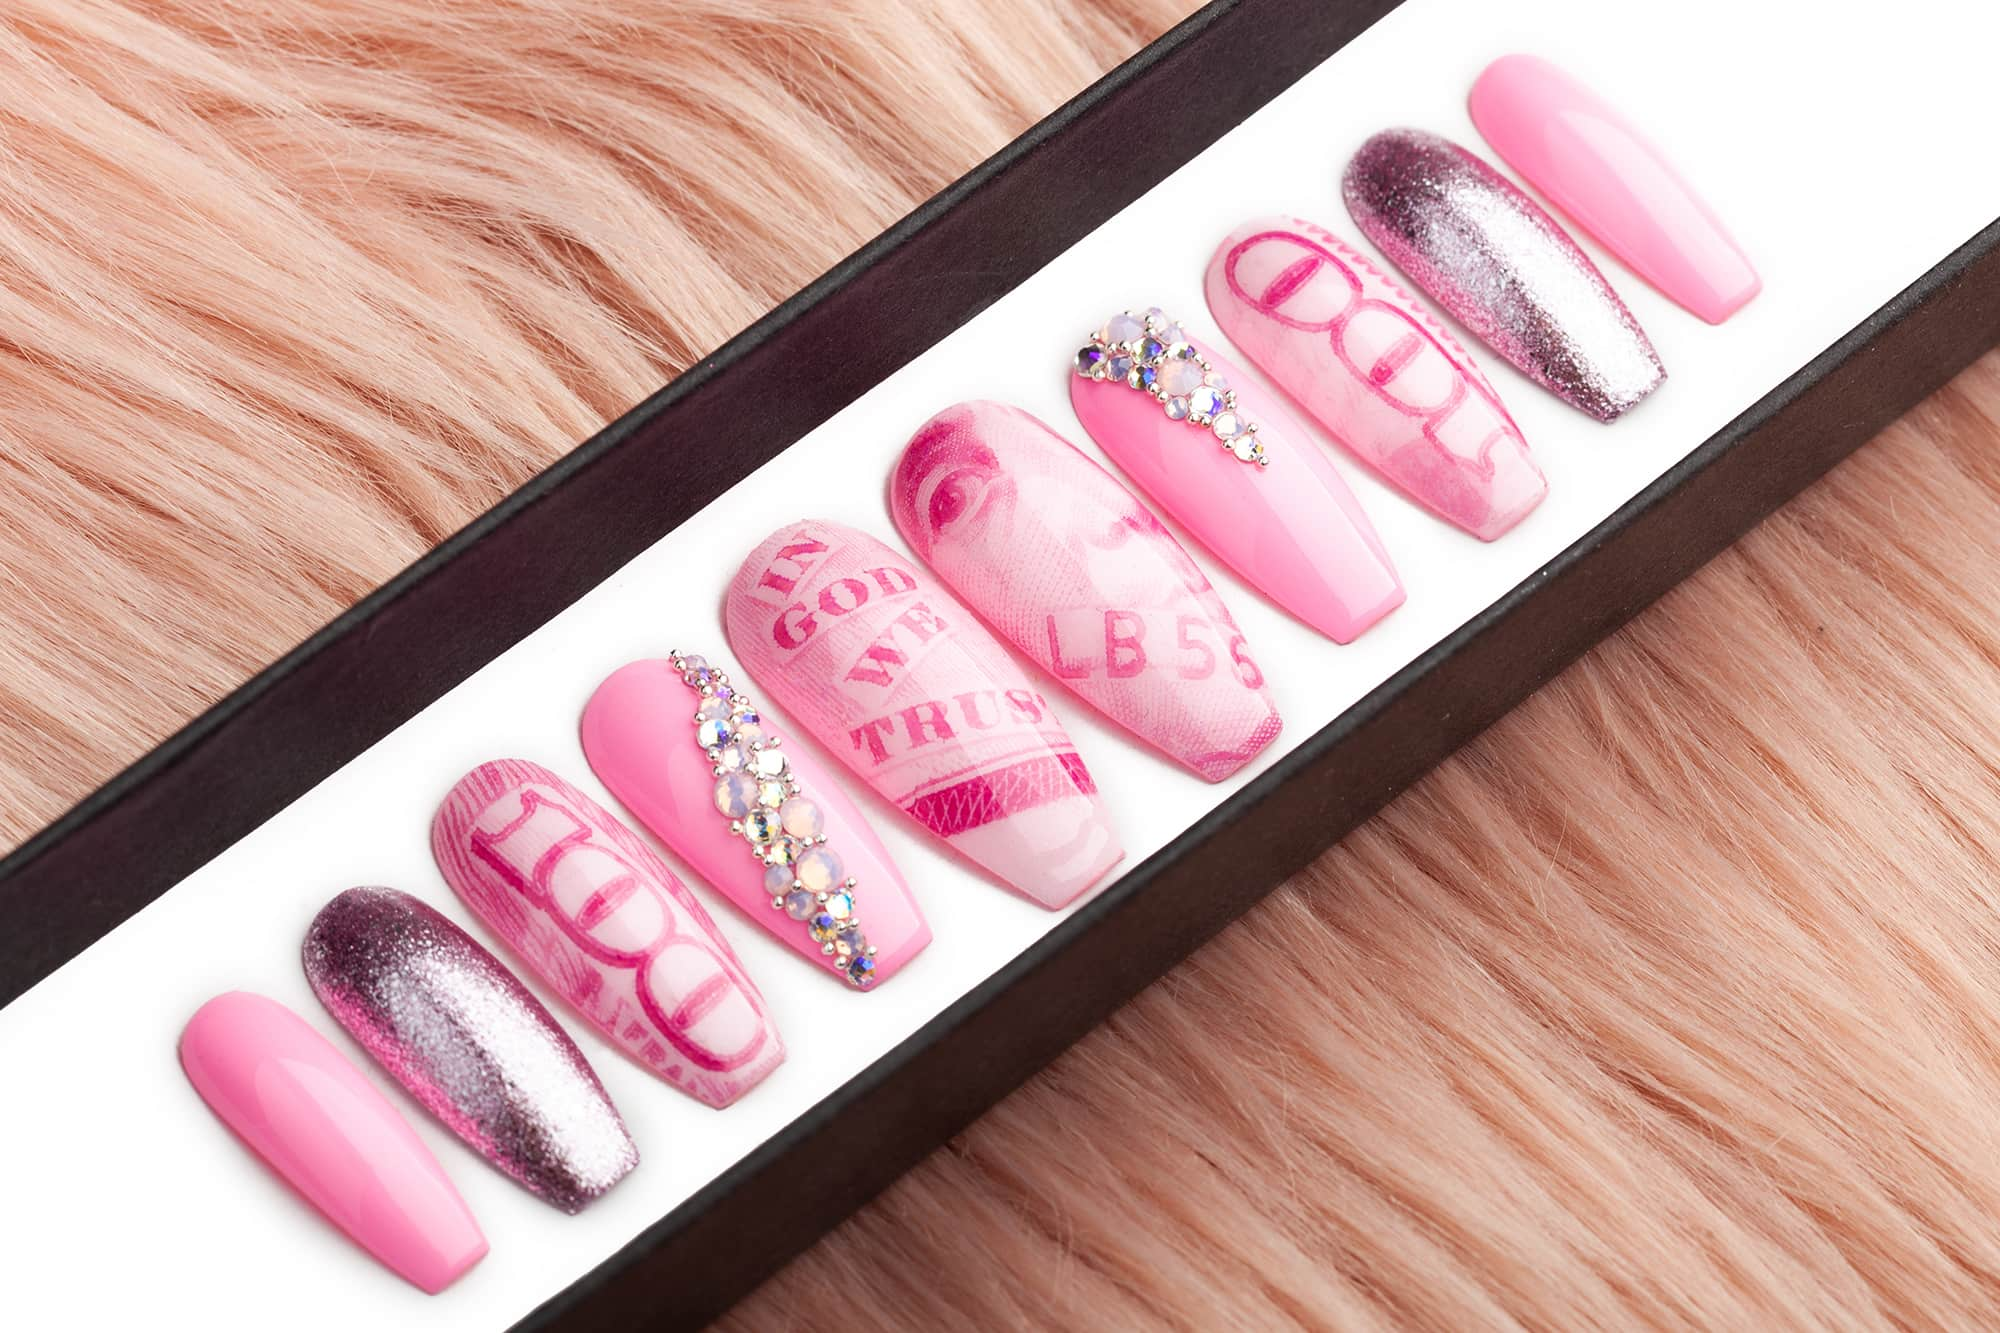 Pink version of Kylie nails with Swarovski crystals and dollars